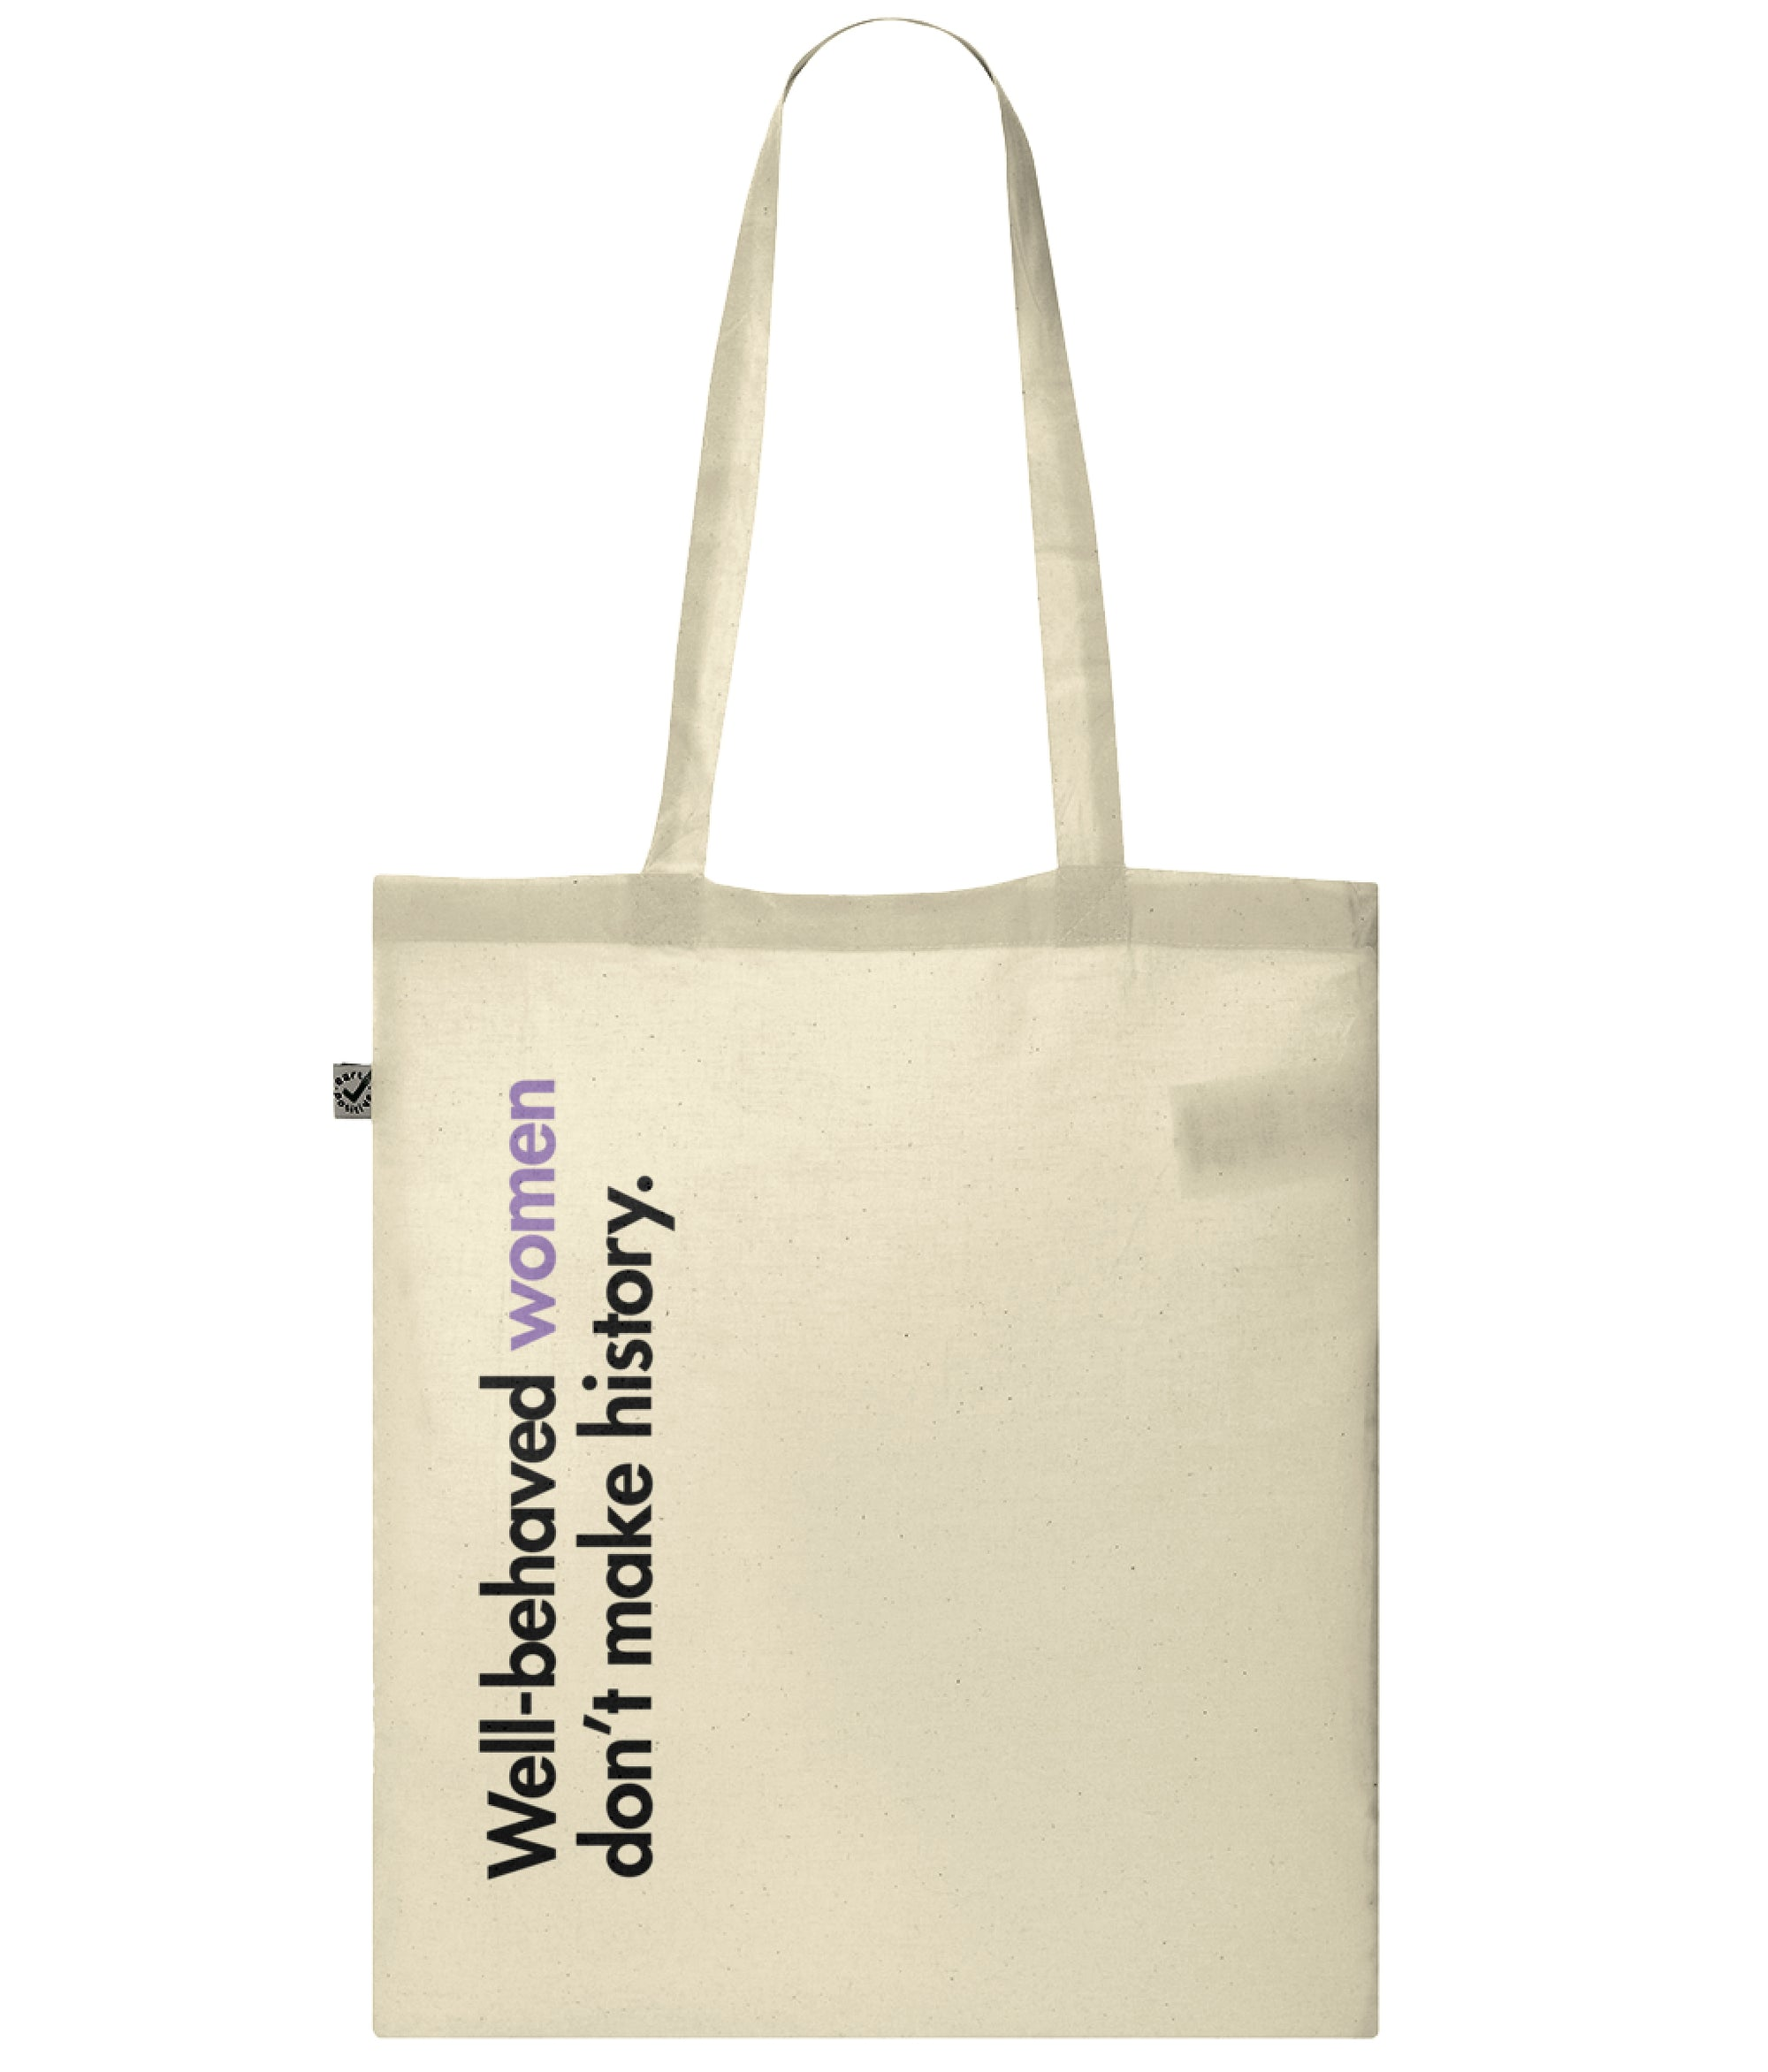 Well Behaved Women Don't Make History Organic Combed Cotton Tote Bag Natural